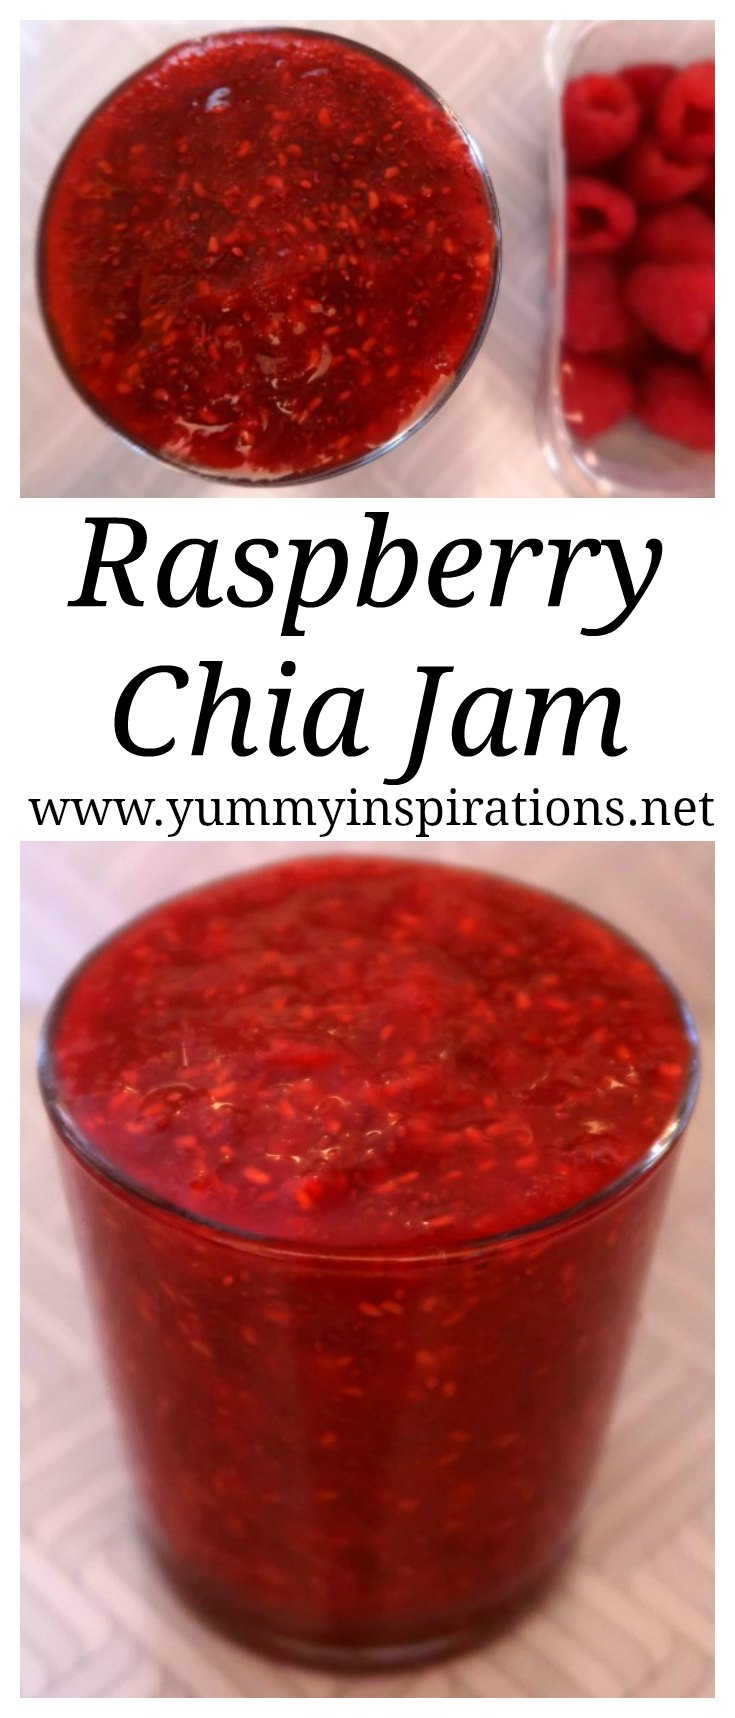 Fresh Raspberry Chia Jam Recipe - How to make easy vegan & keto friendly chia seed jam recipes with no sugar and no pectin.